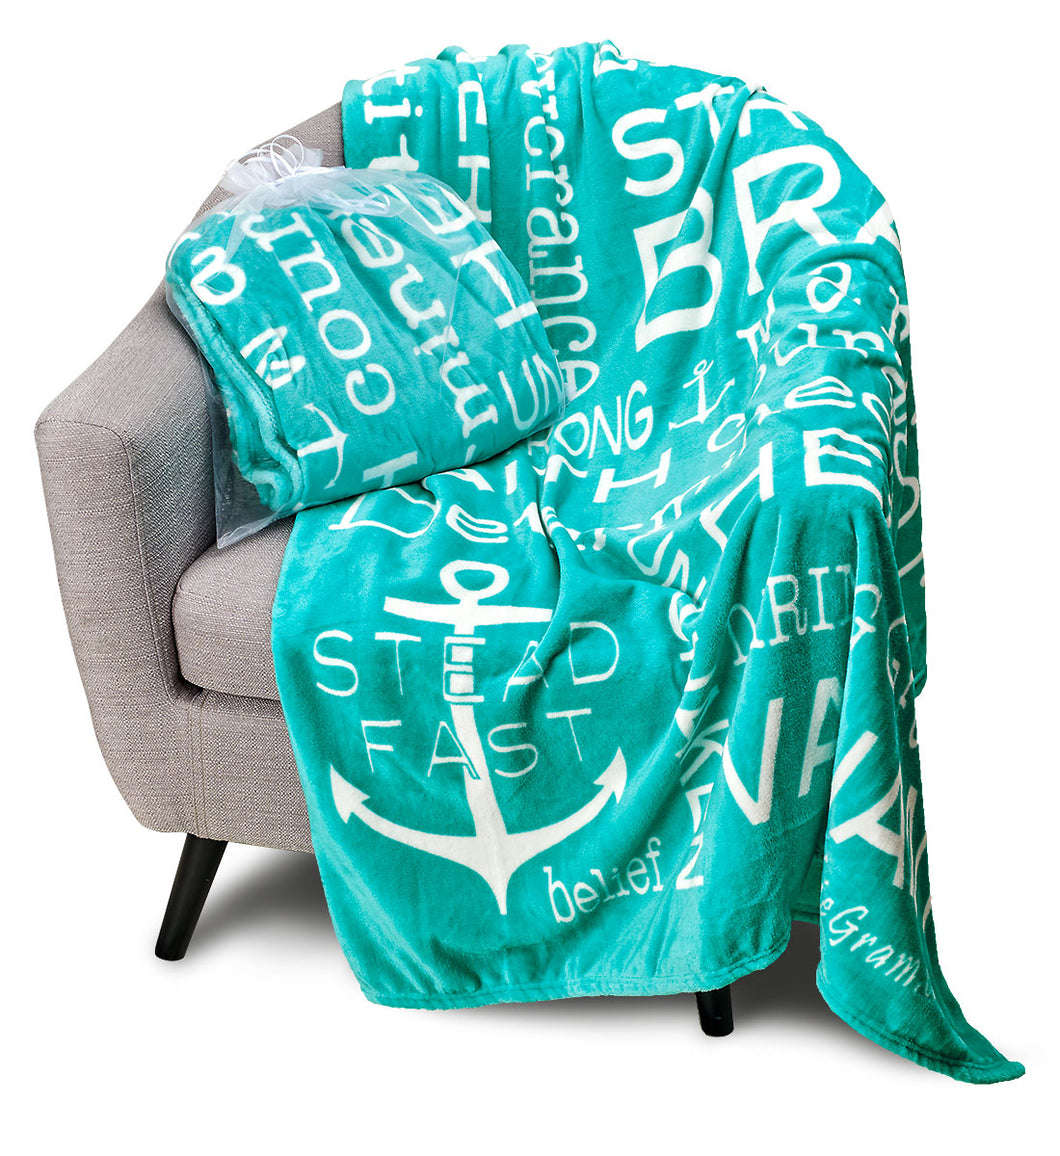 Bravery Inspirational Throw Blanket Strength & Encouragement (Teal)